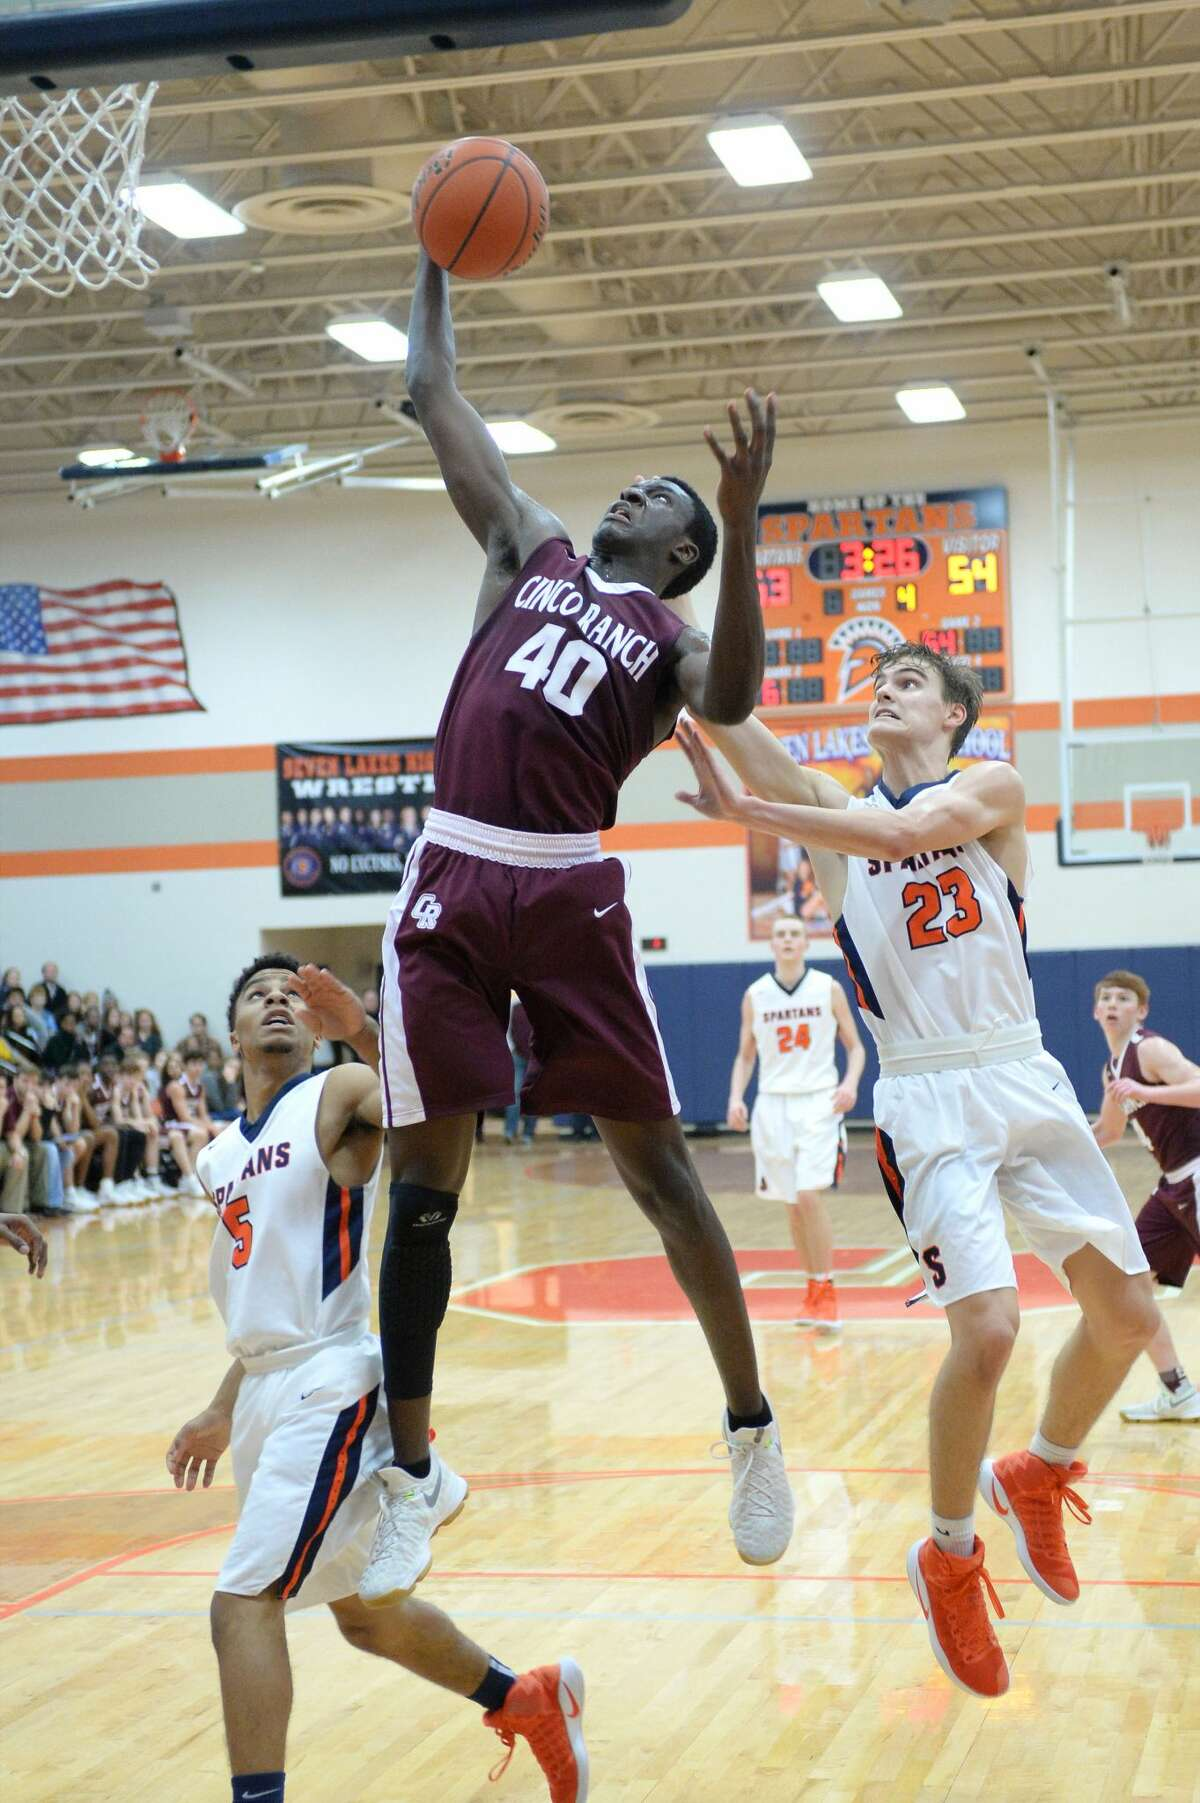 Alonzo Sule (40) of Cinco Ranch grabs a rebound in front of Jackson McClurg (23) of Seven Lakes during the second half of a boys basketball game between the Cinco Ranch Cougars and the Seven Lakes Spartans on Friday January 6, 2017 at the Seven Lakes HS, Katy, TX.